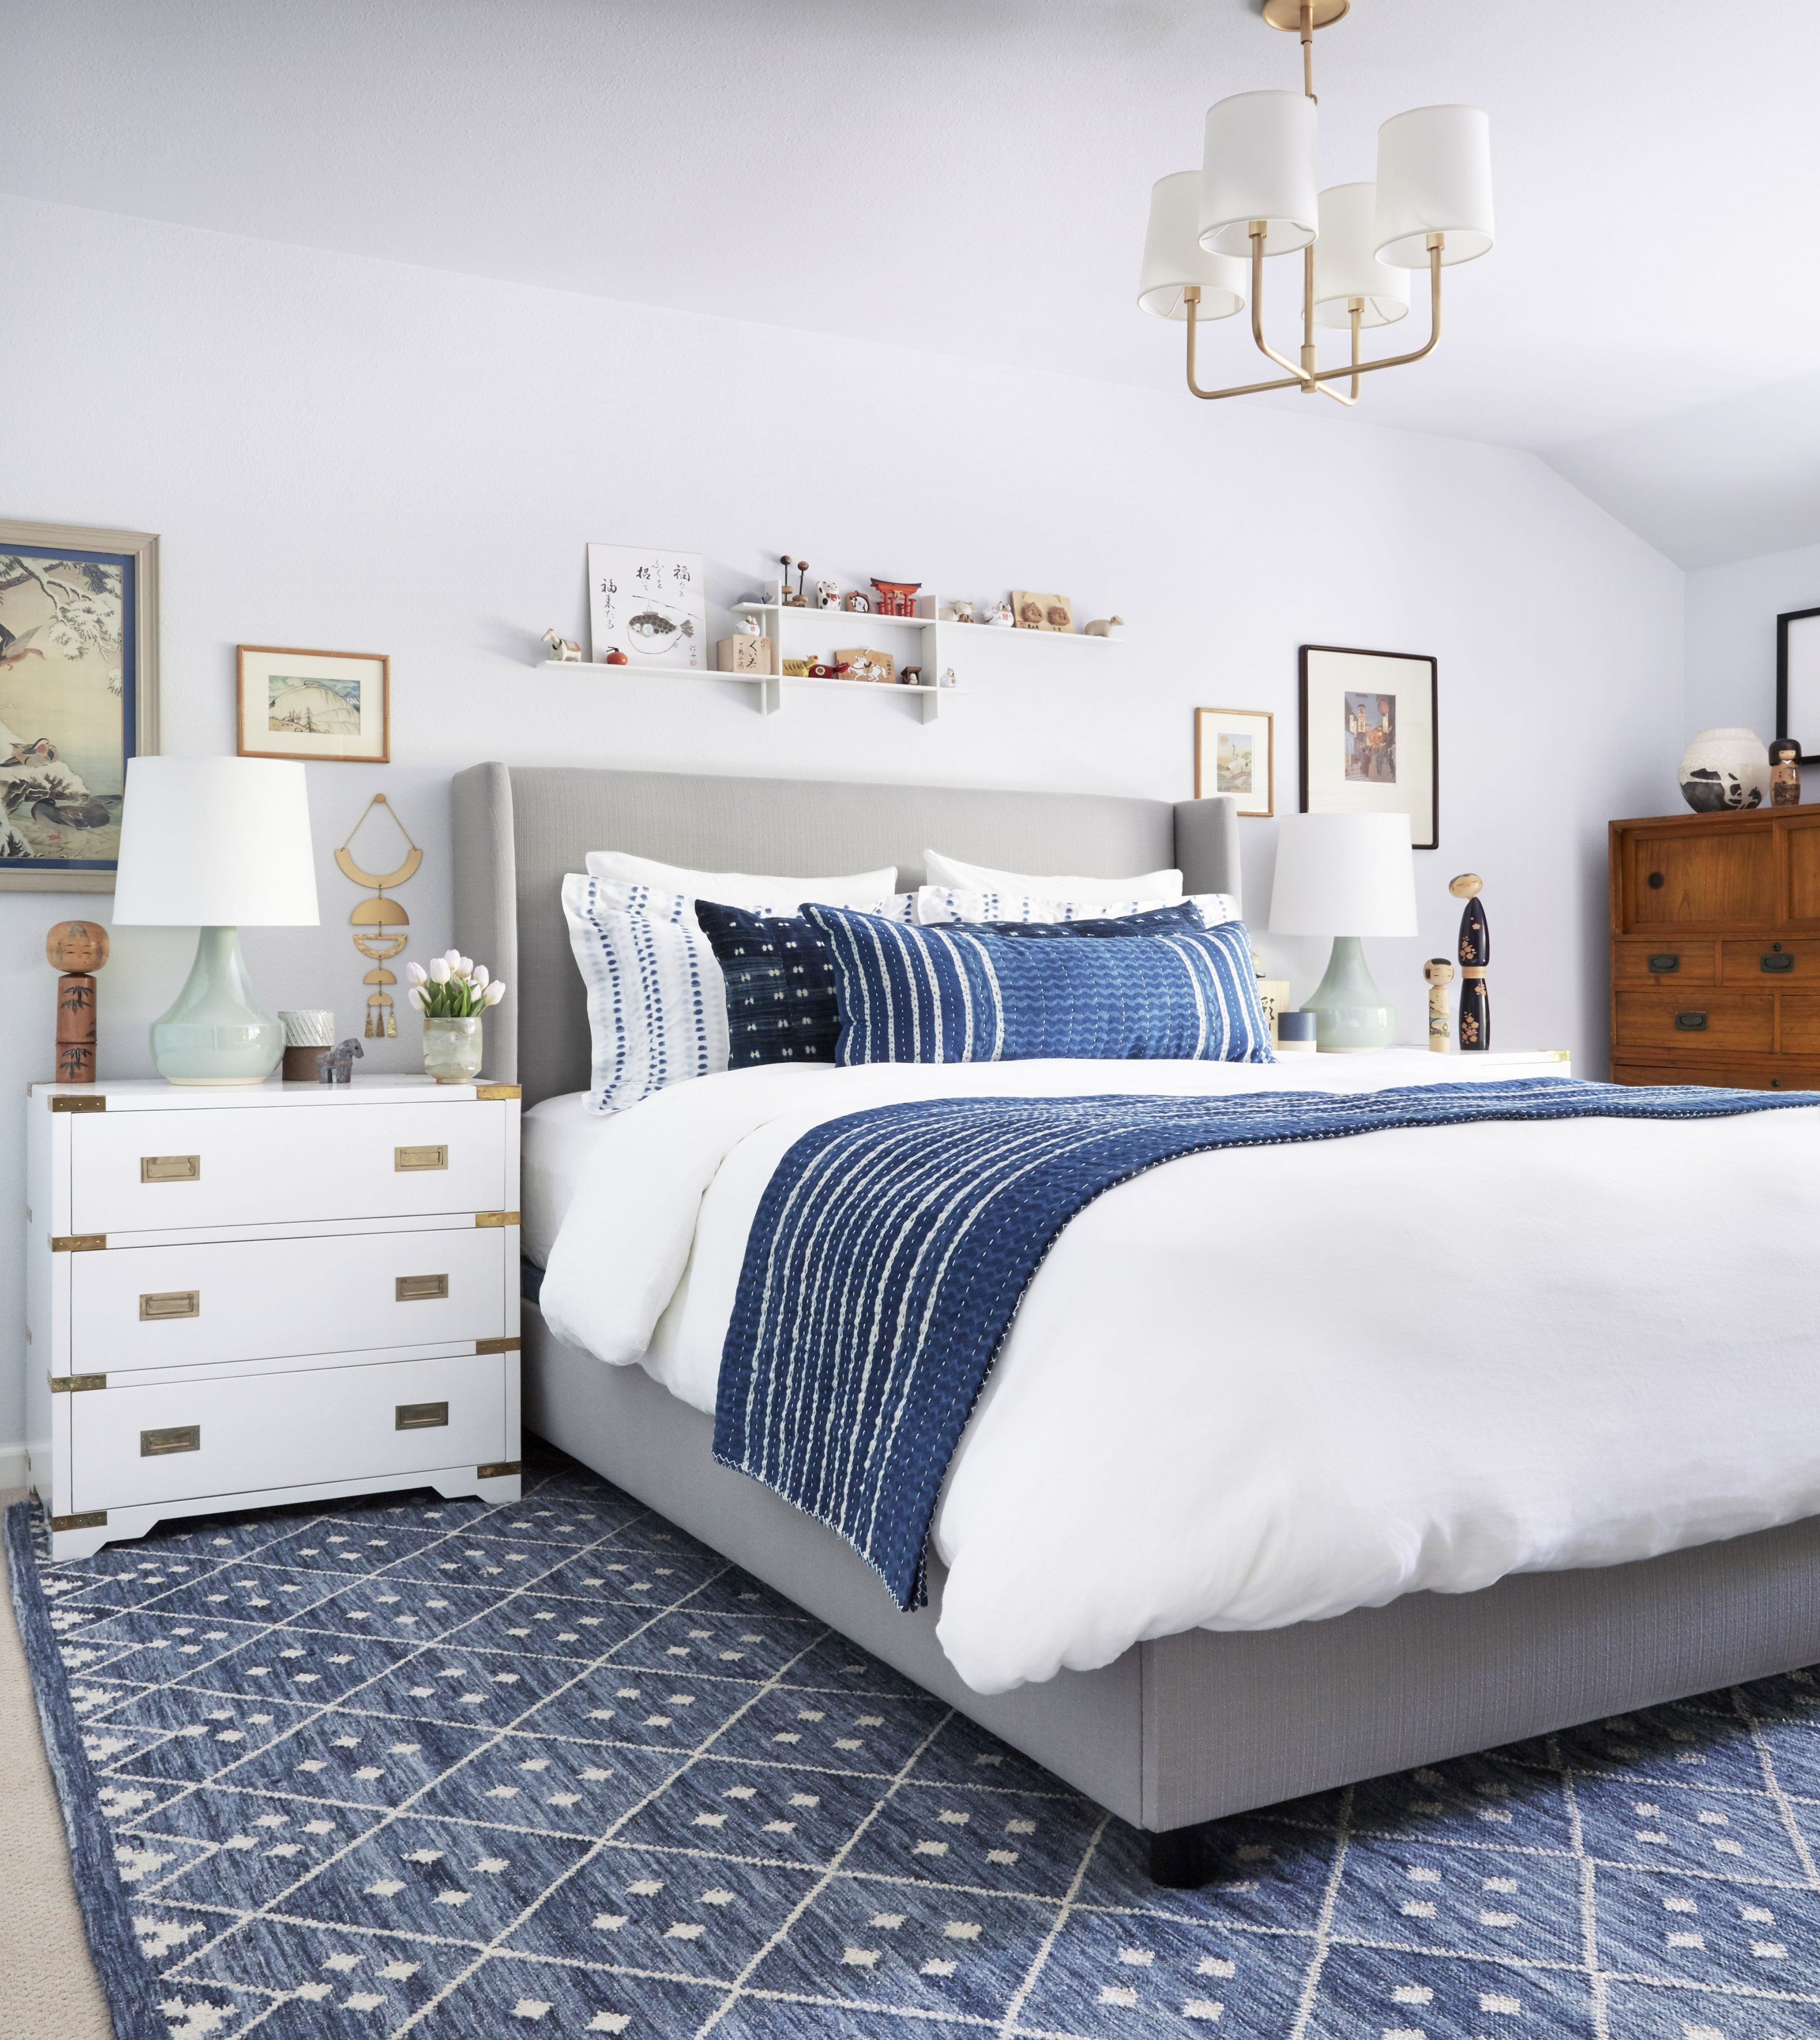 Shades Of Blue for Bedroom Lovely Blue Bedroom Decor Guest Bedroom Ideas How to Create Big